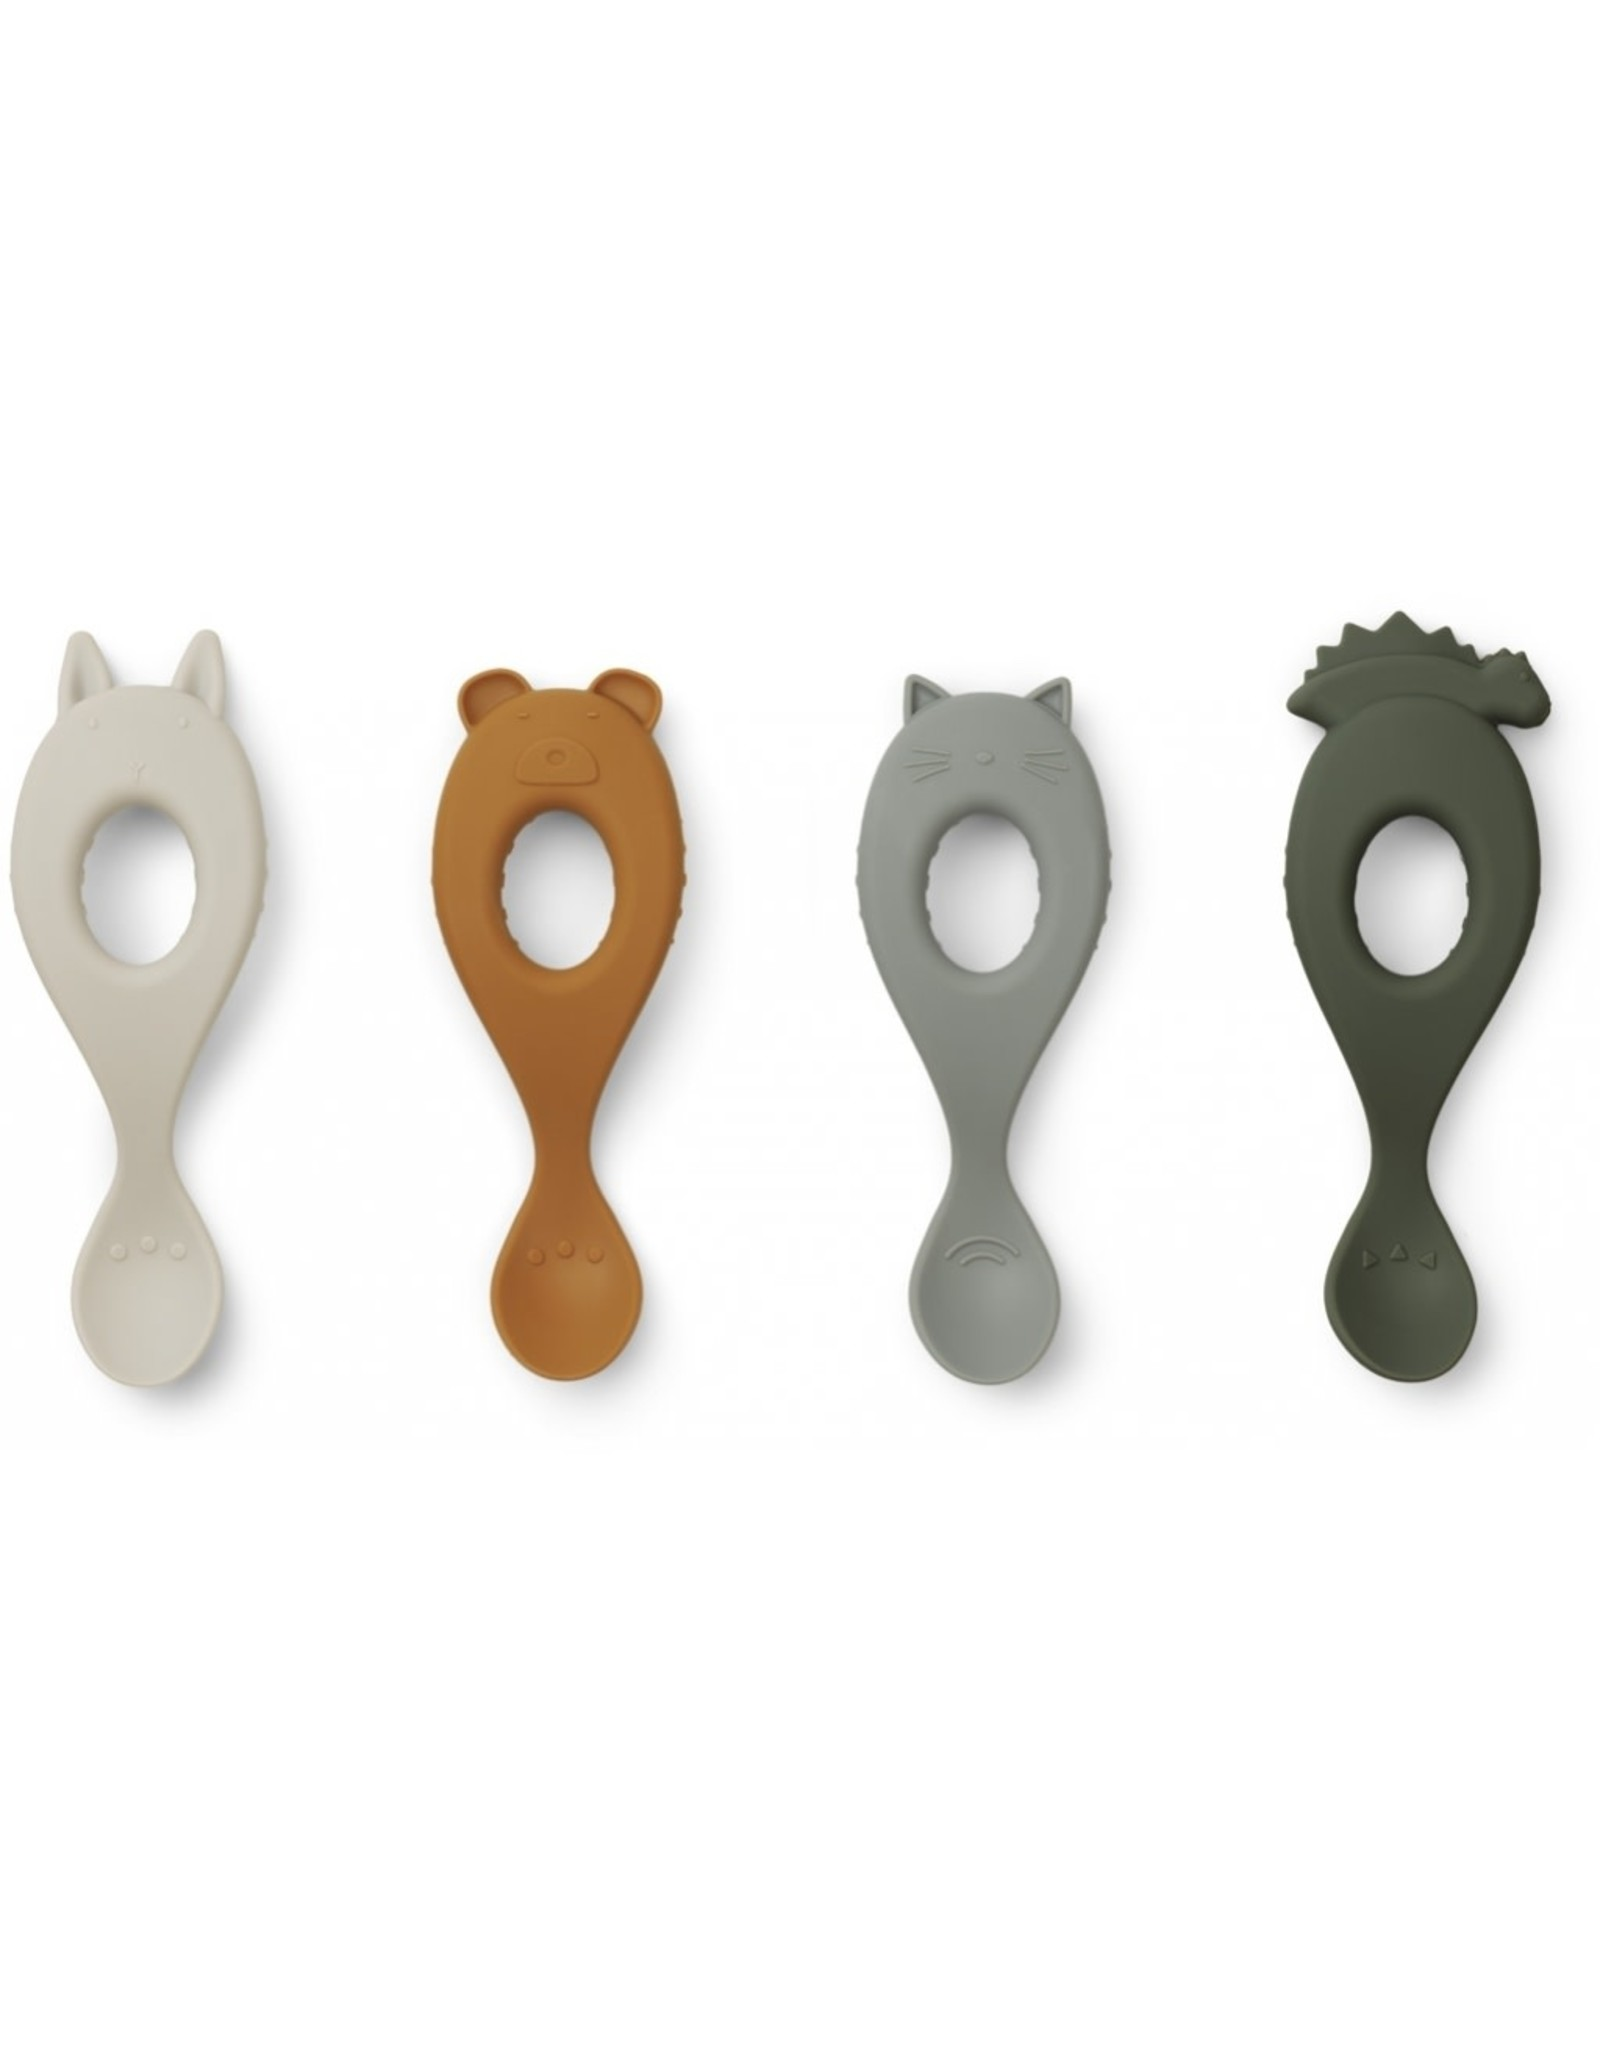 Liewood Liva Silicone Spoon - 4 Pack - Hunter Green mix